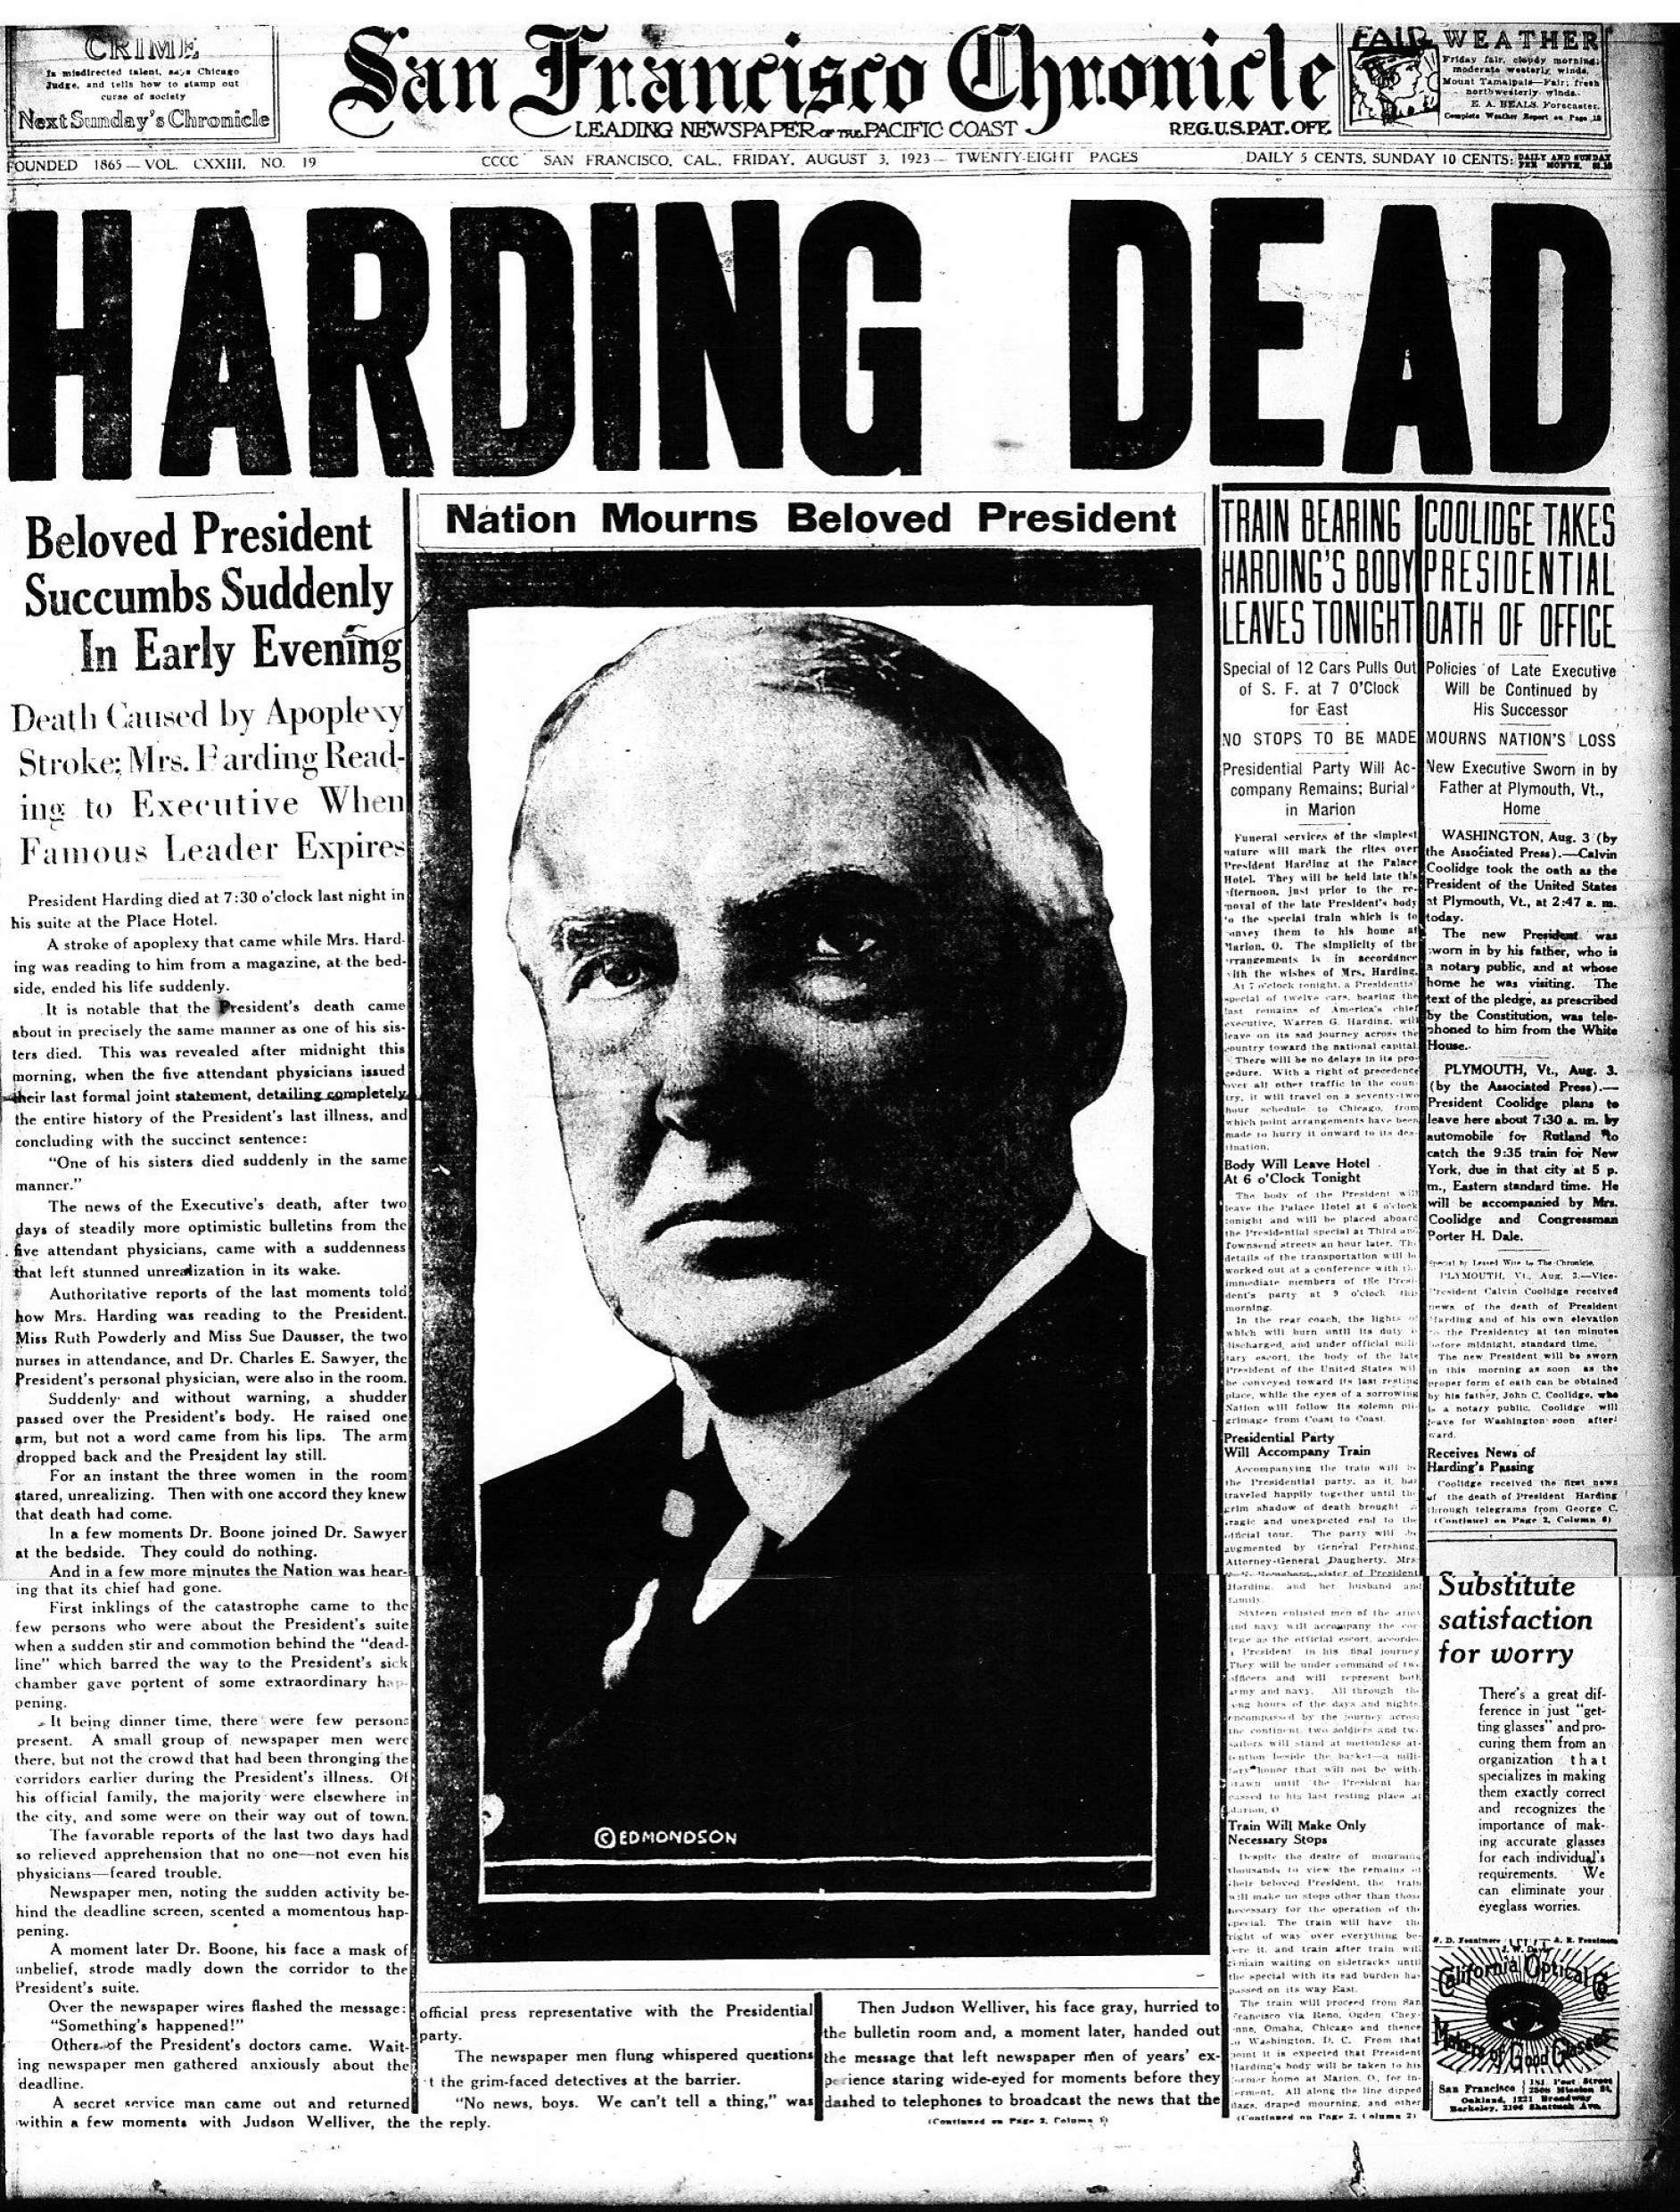 A newspaper account of President Harding's death